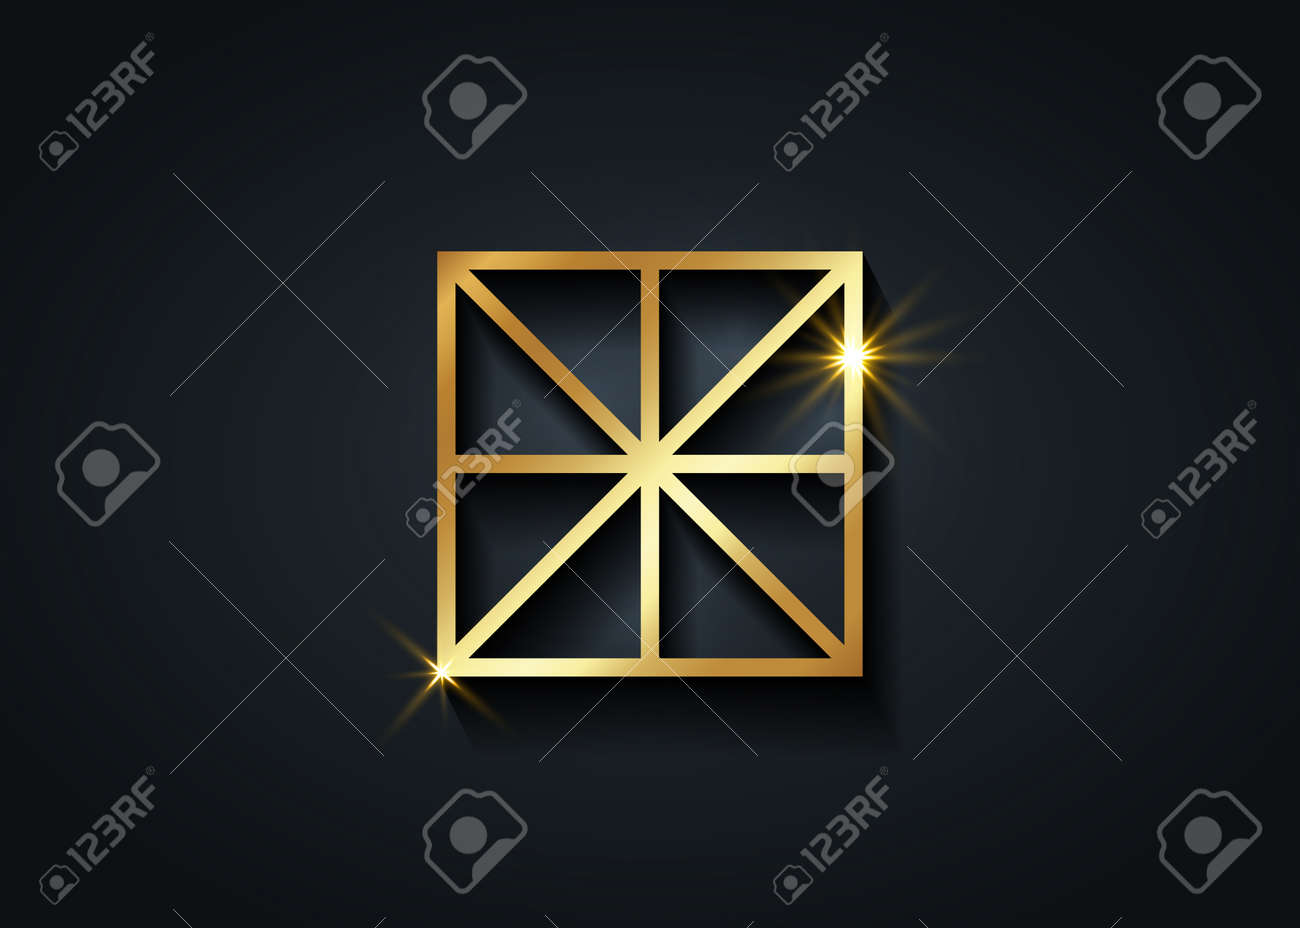 Sacred Center, The Omphalos, gold exoteric symbols, eight linear segments converging towards a central point of a square. Golden Geometry Logo icon isolated on black background - 172077586